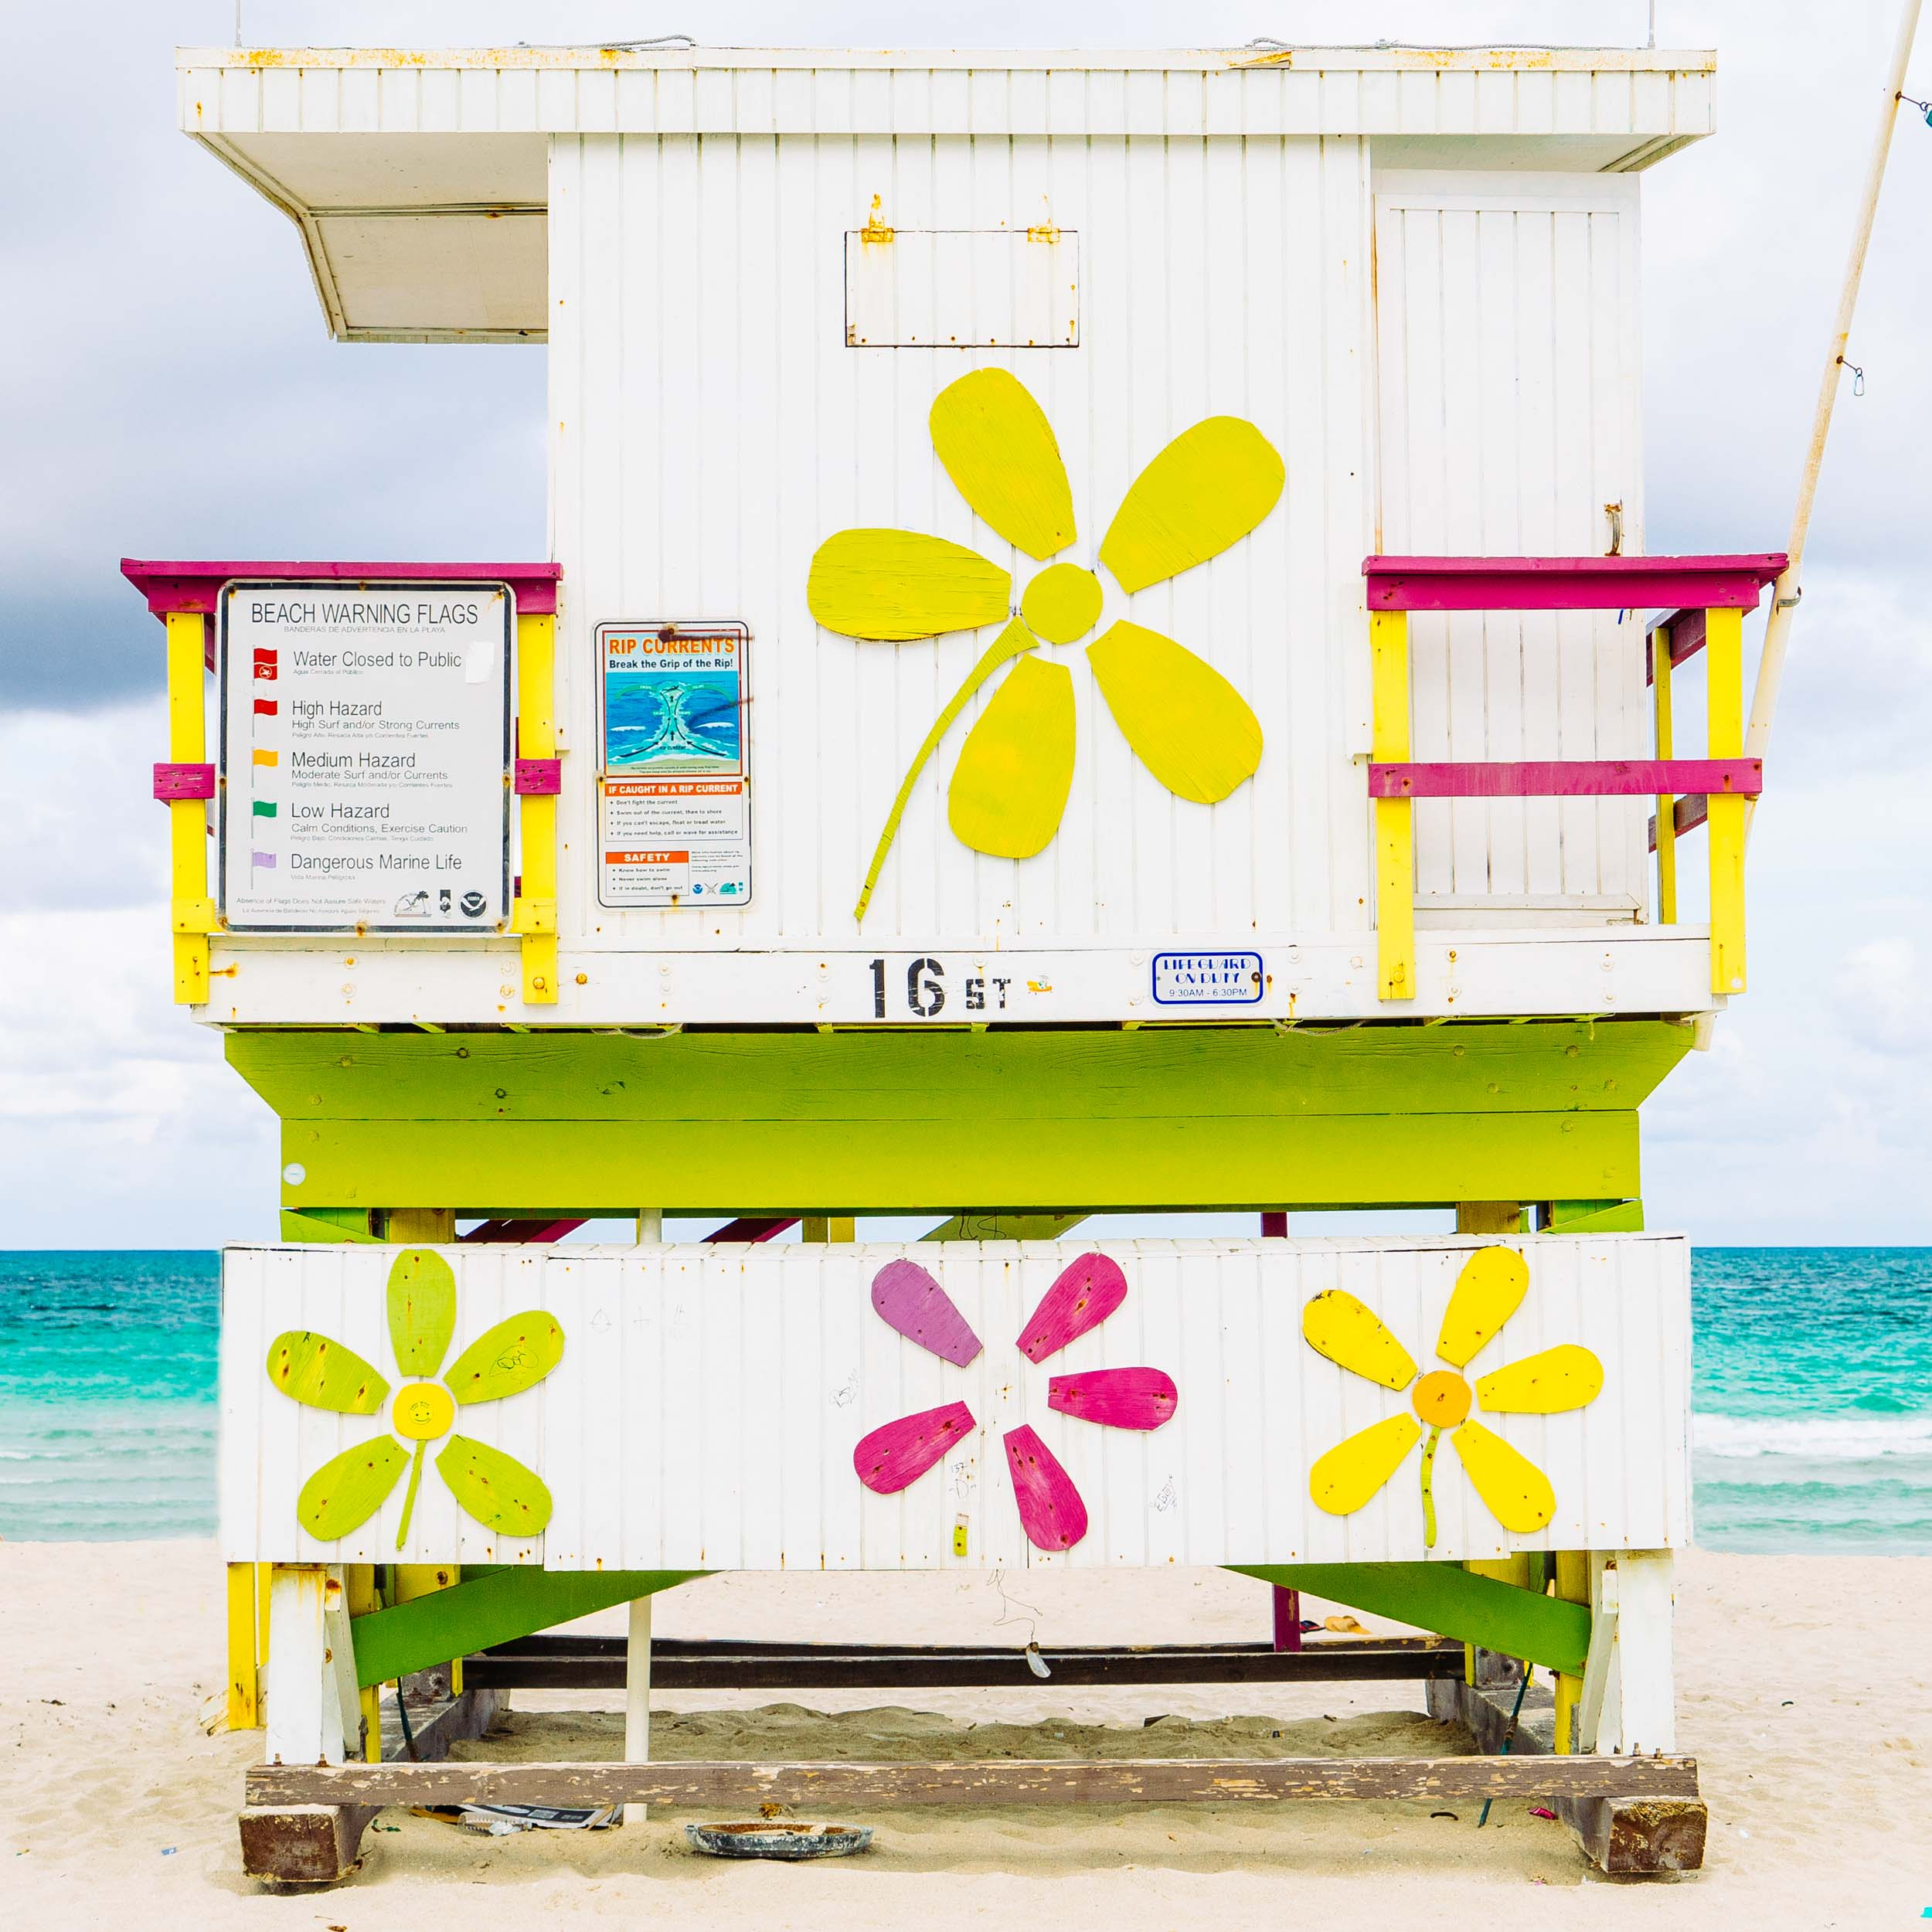 16th St. Miami Lifeguard Stand - Rear View